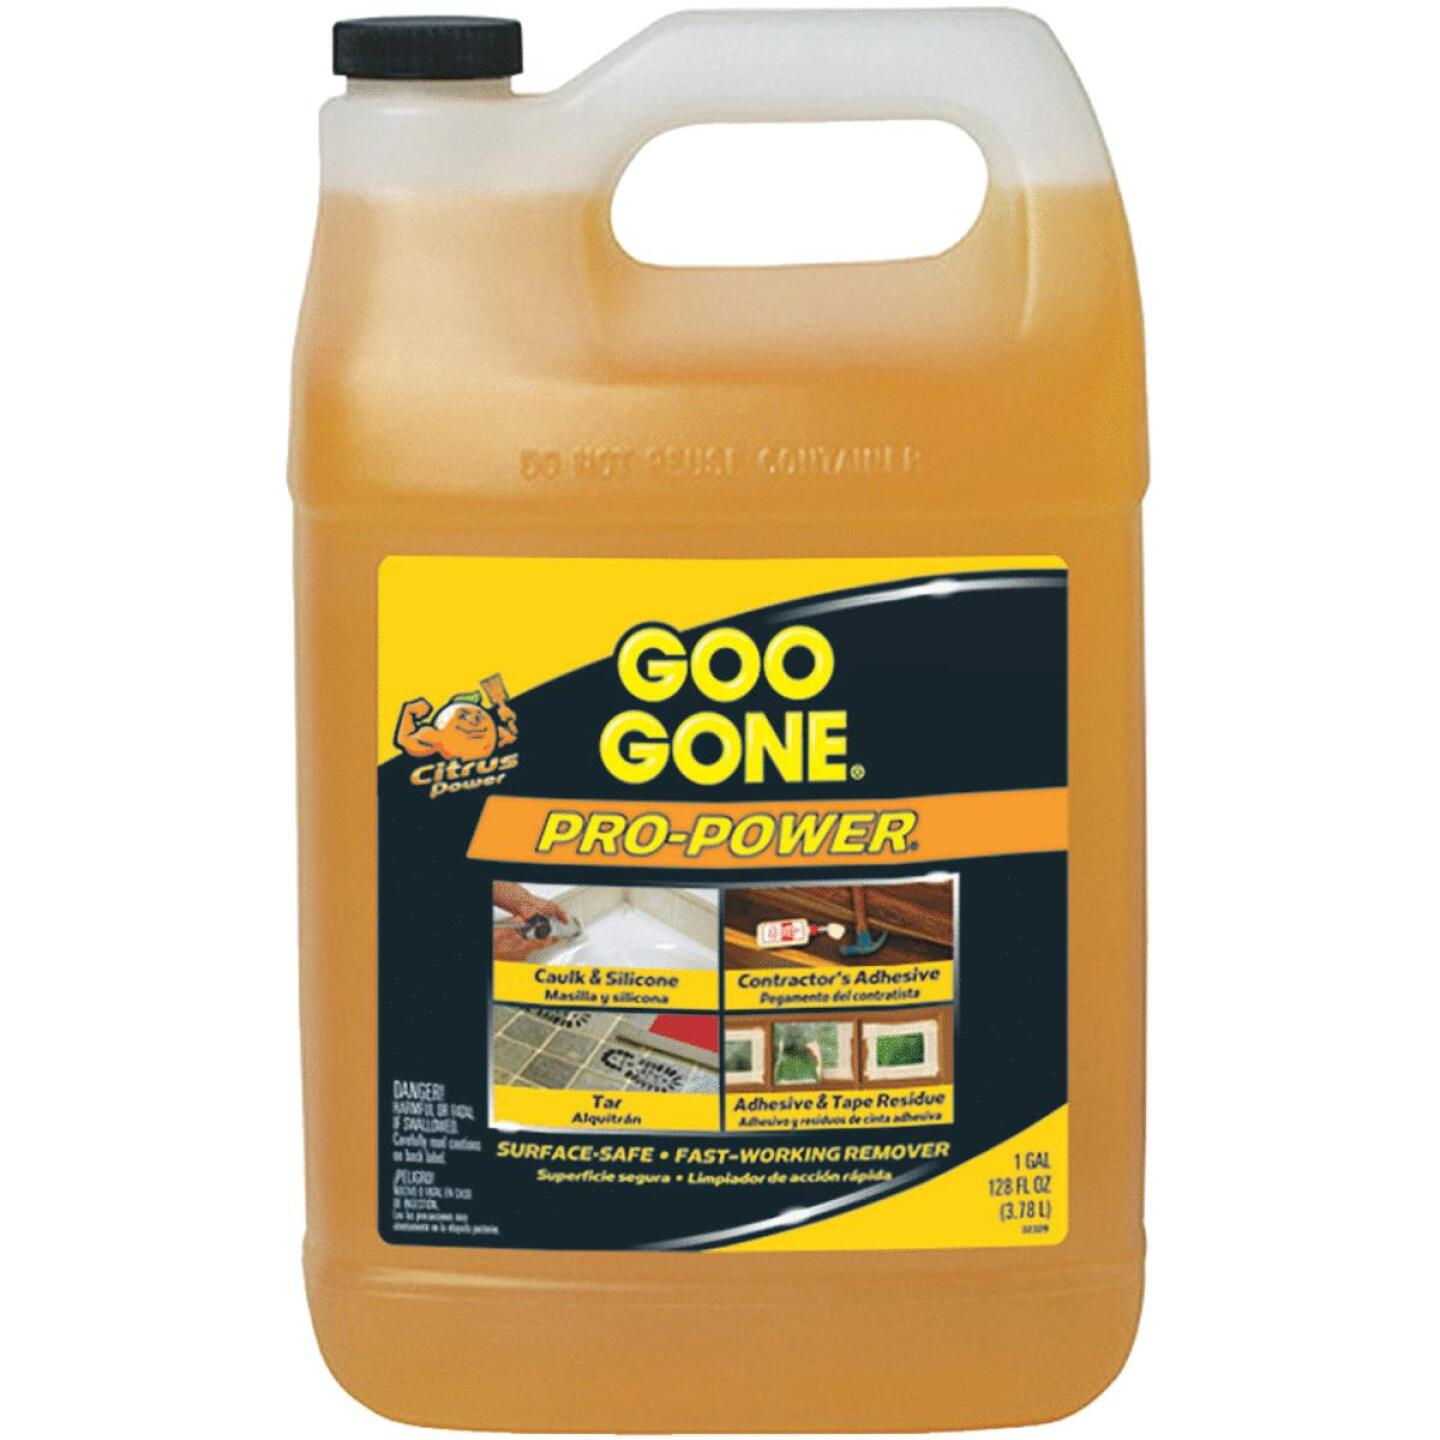 Goo Gone 1 Gal. Pro-Power Adhesive Remover Image 322